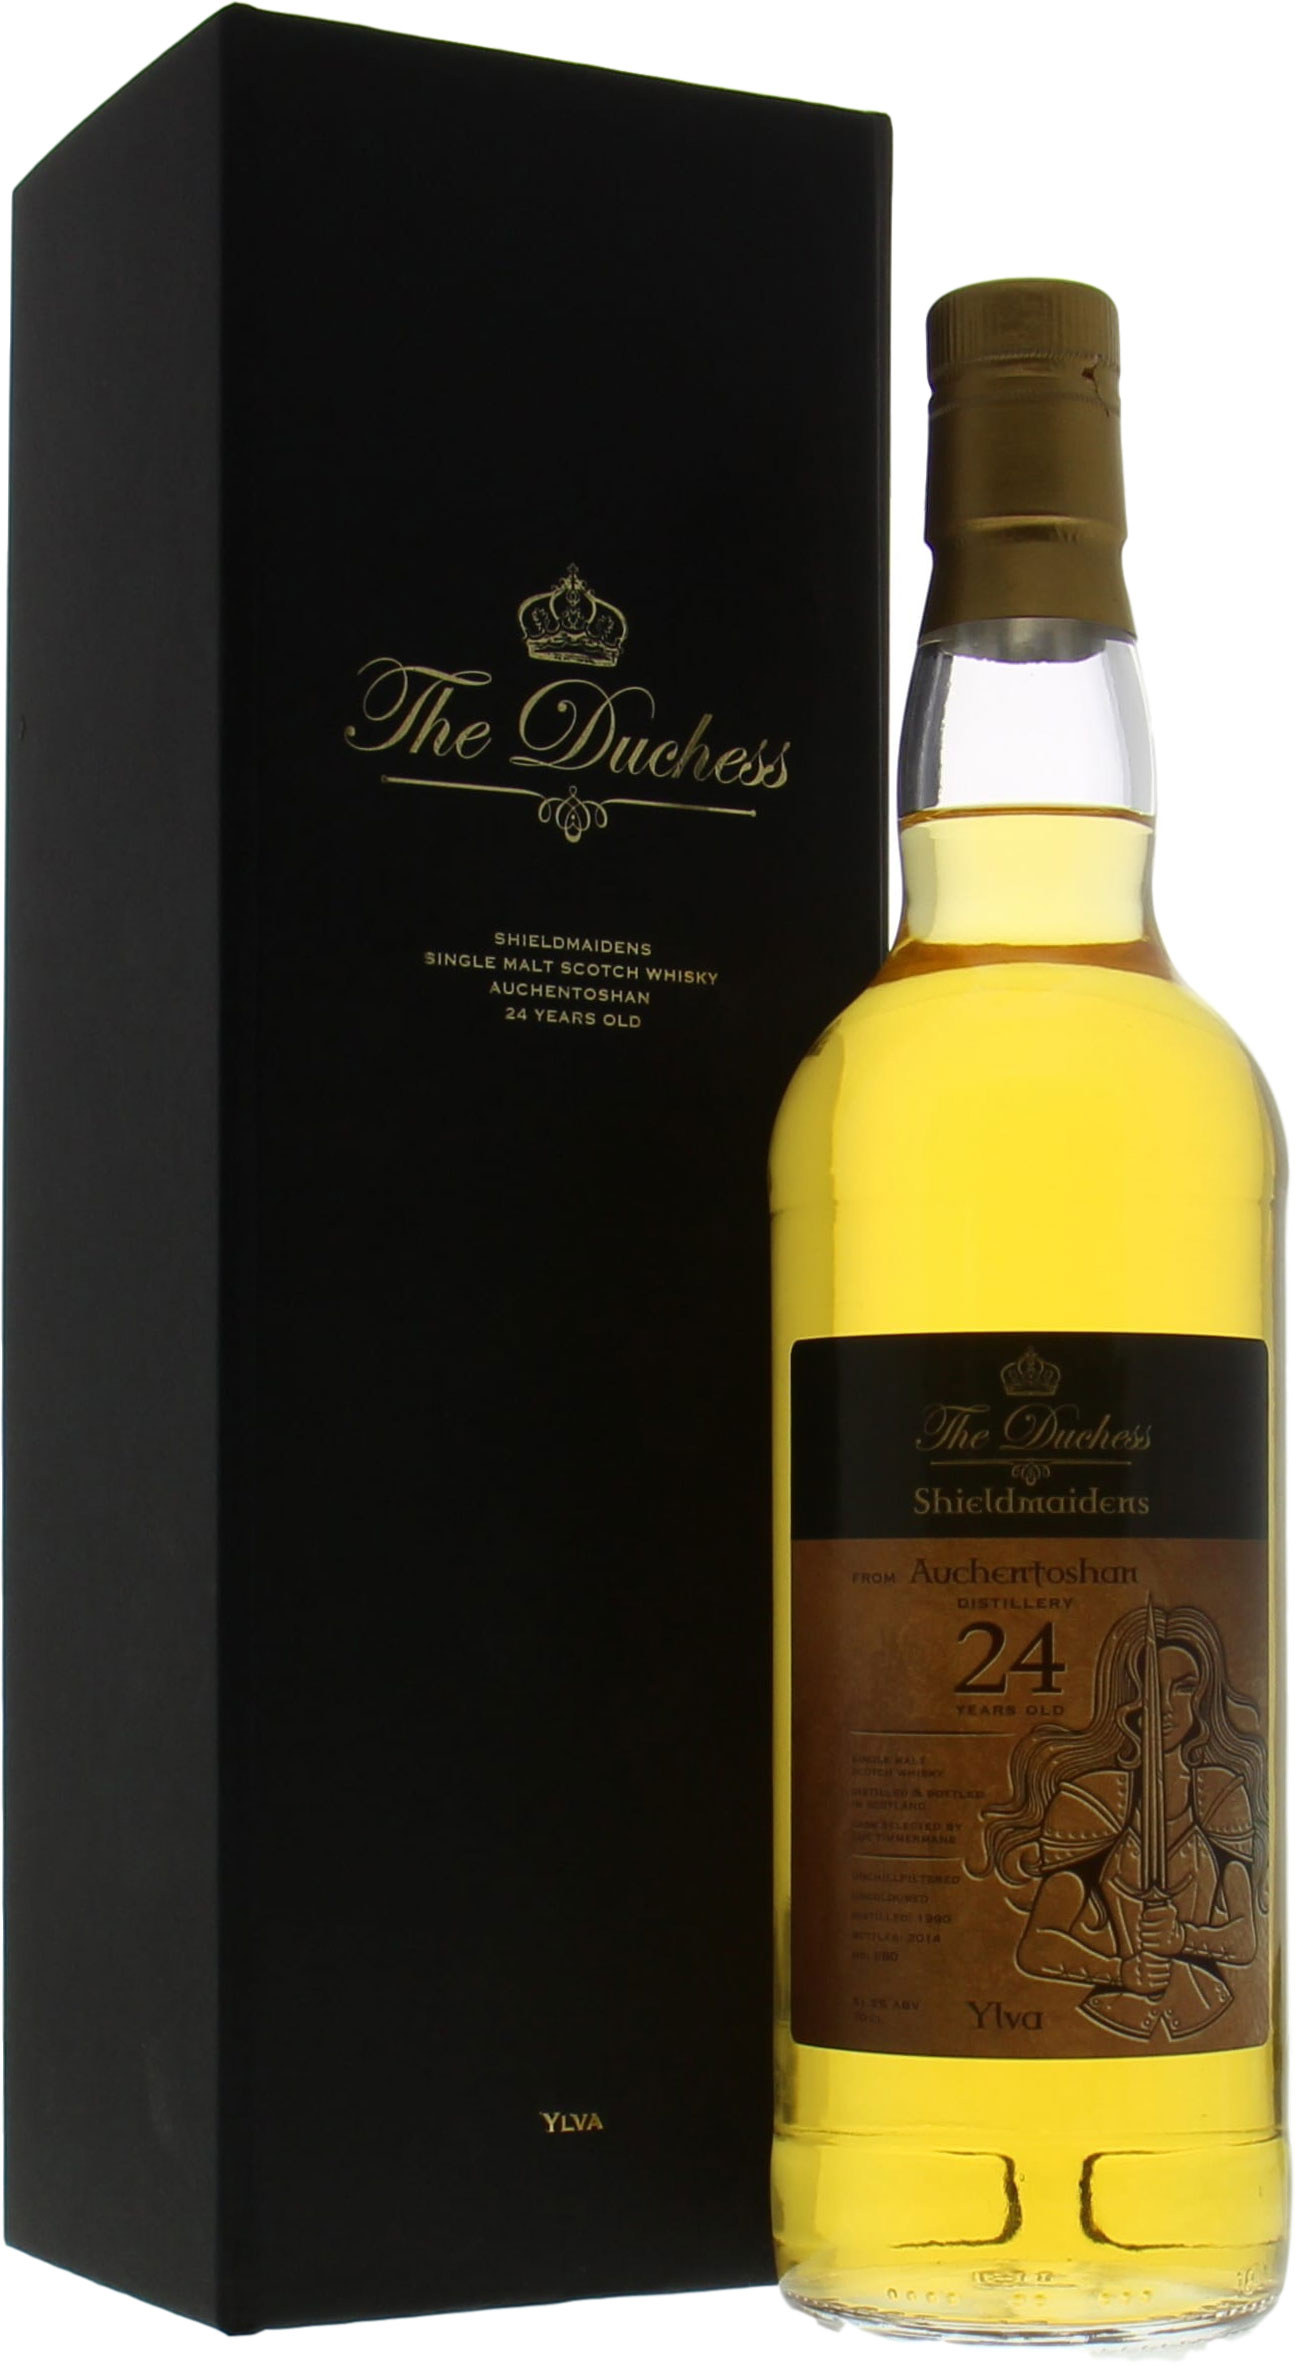 Auchentoshan - 24 Years Old The Duchess Shieldmaiden Ylva Selected by Luc Timmermans 51,5%